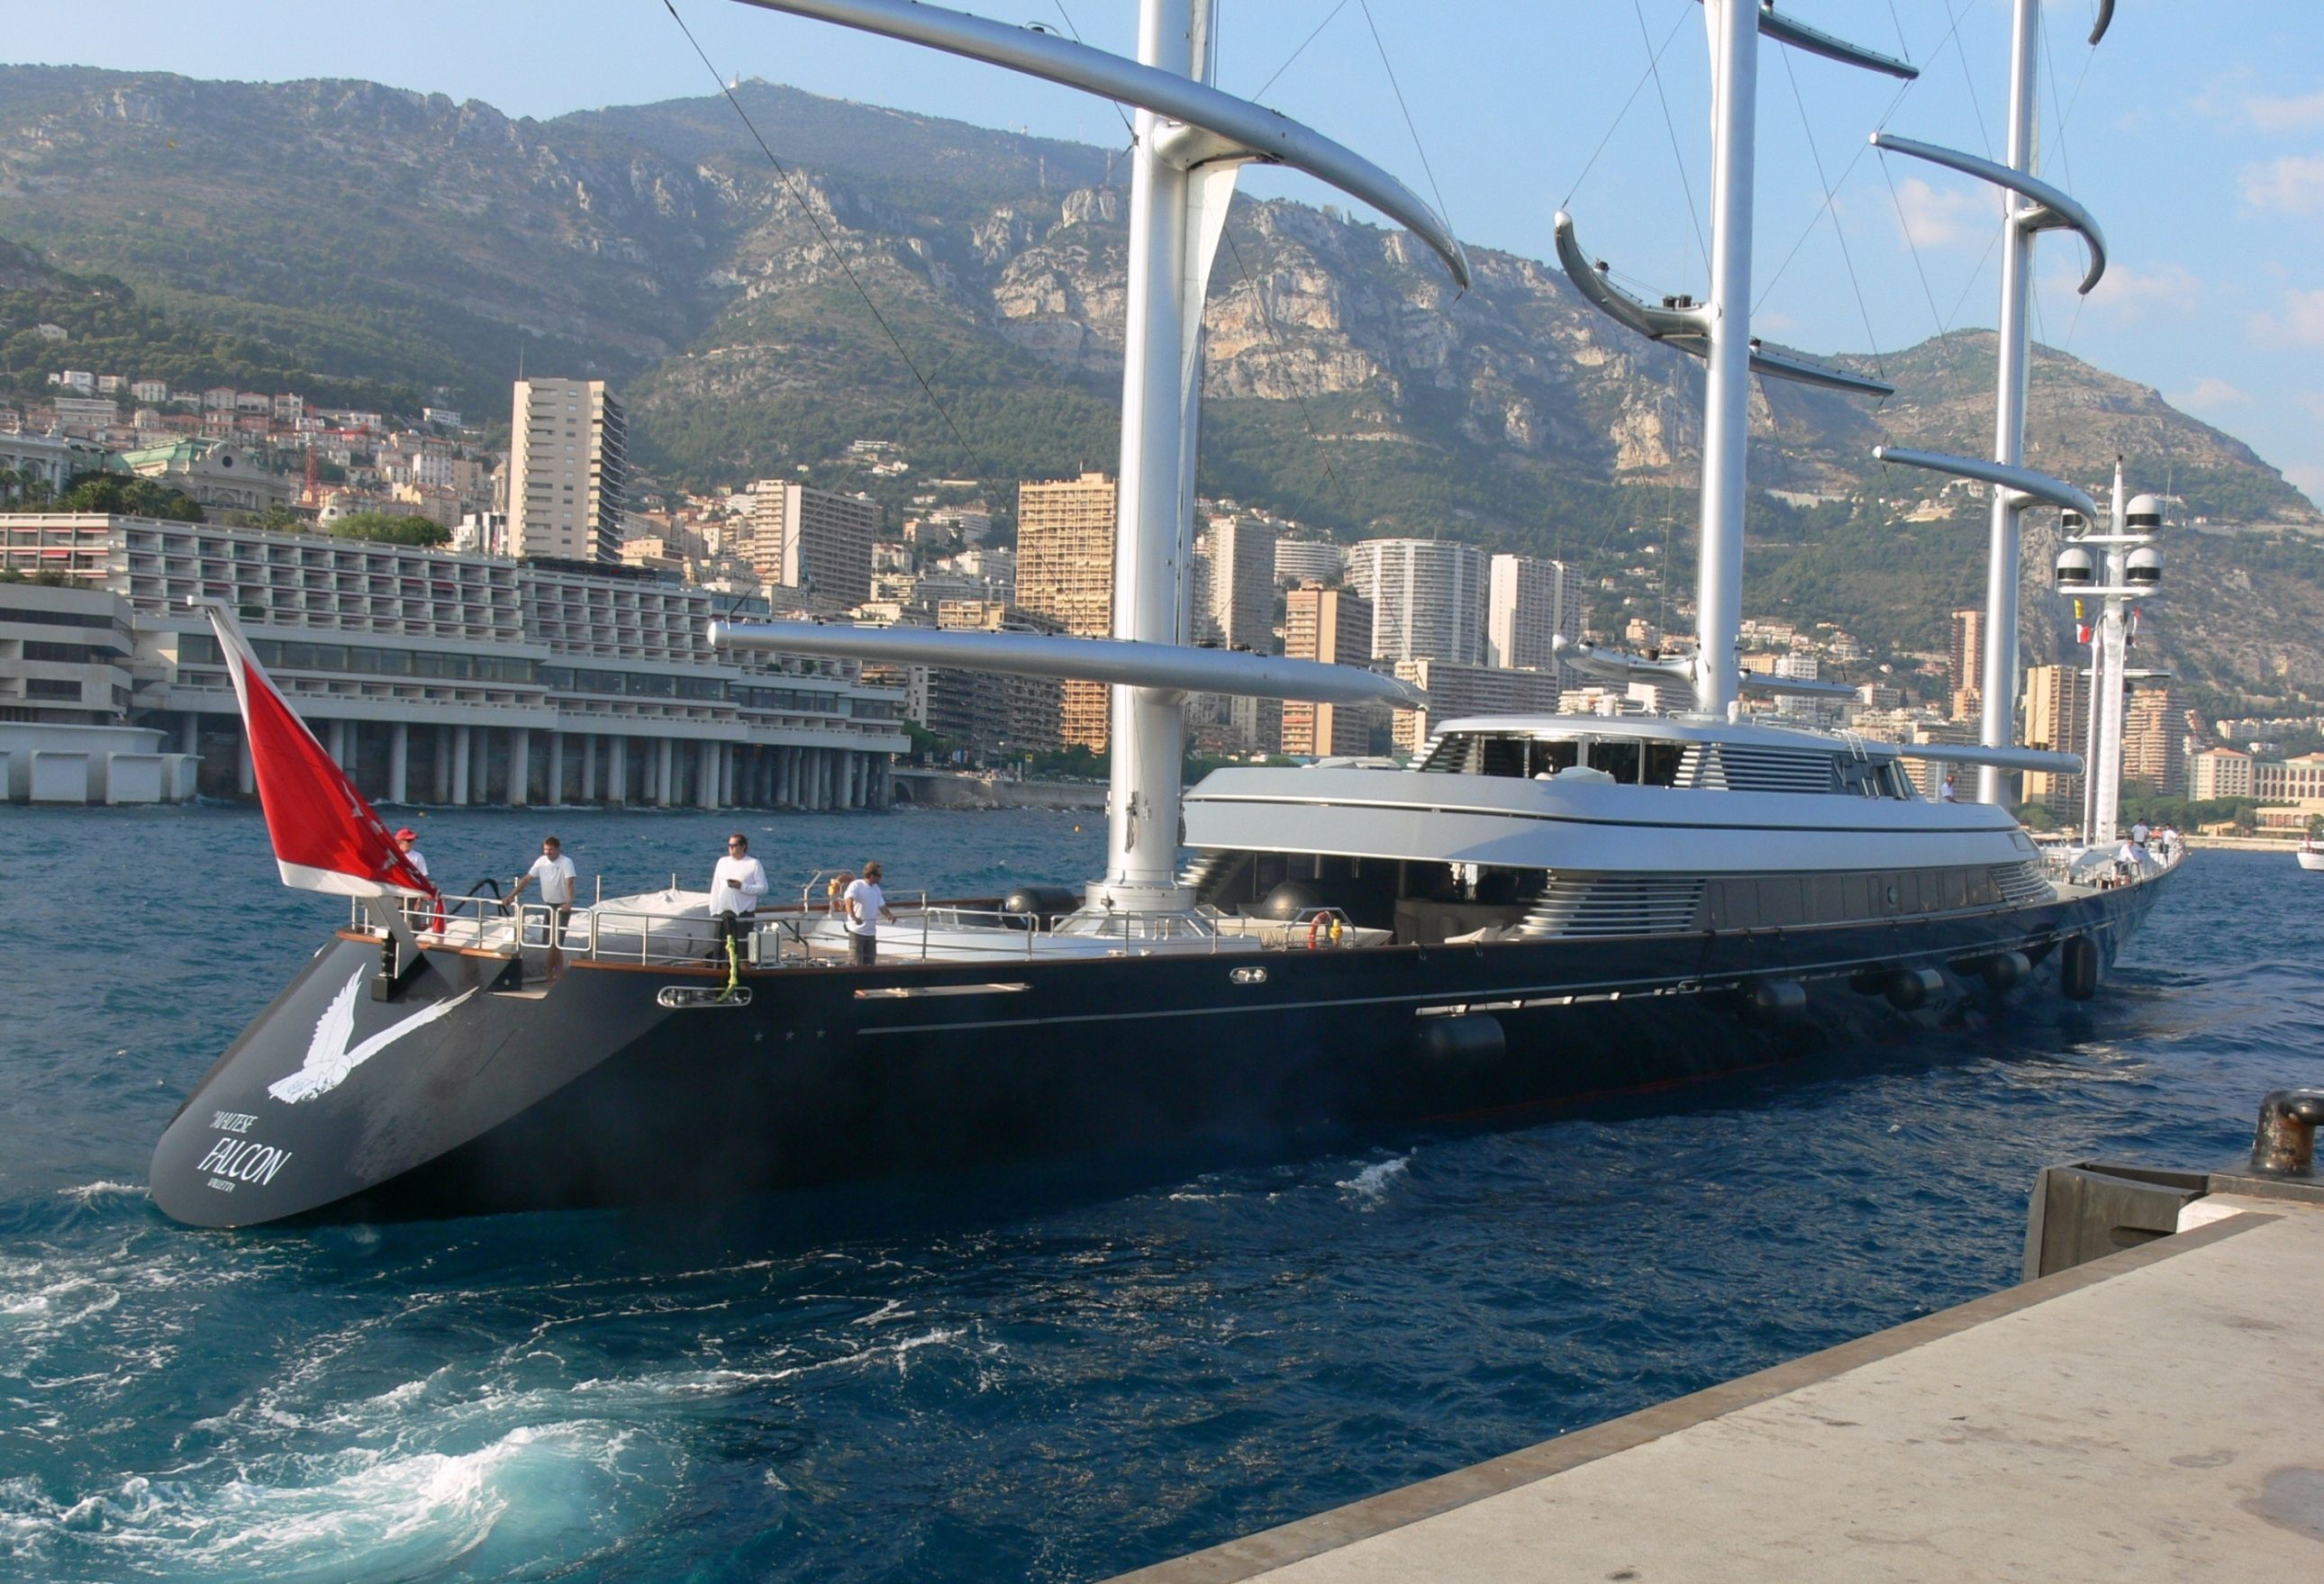 maltese falcon yacht yacht MALTESE FALCON seen here